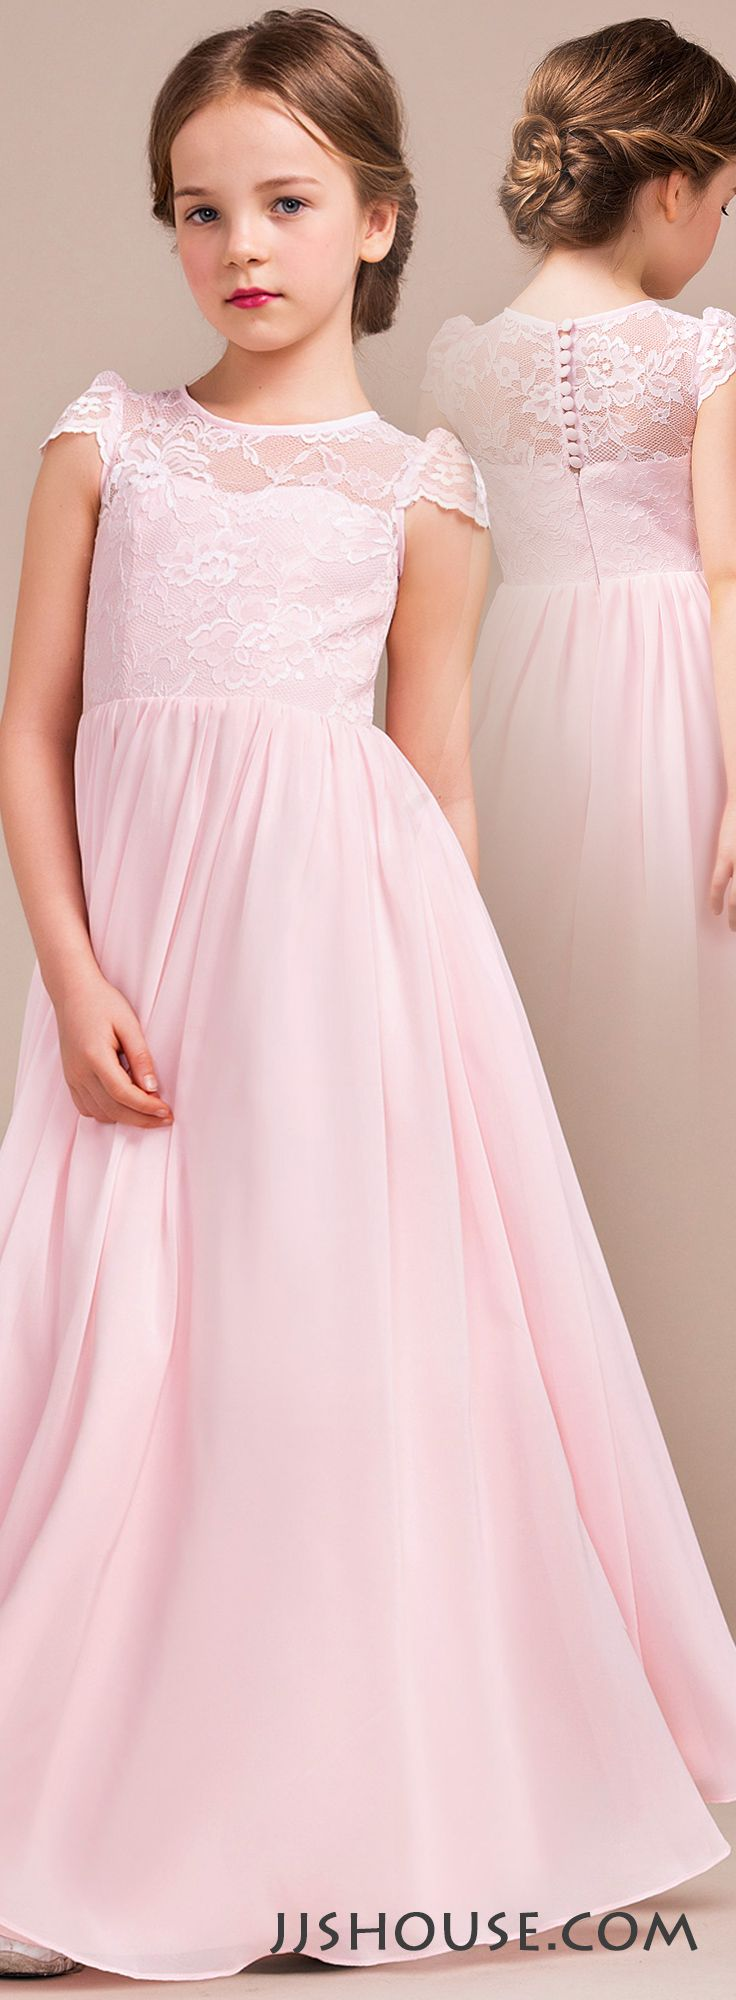 Best 25 junior bridesmaids ideas on pinterest junior bridesmaid sweet junior bridesmaid dress jjshouse ombrellifo Image collections